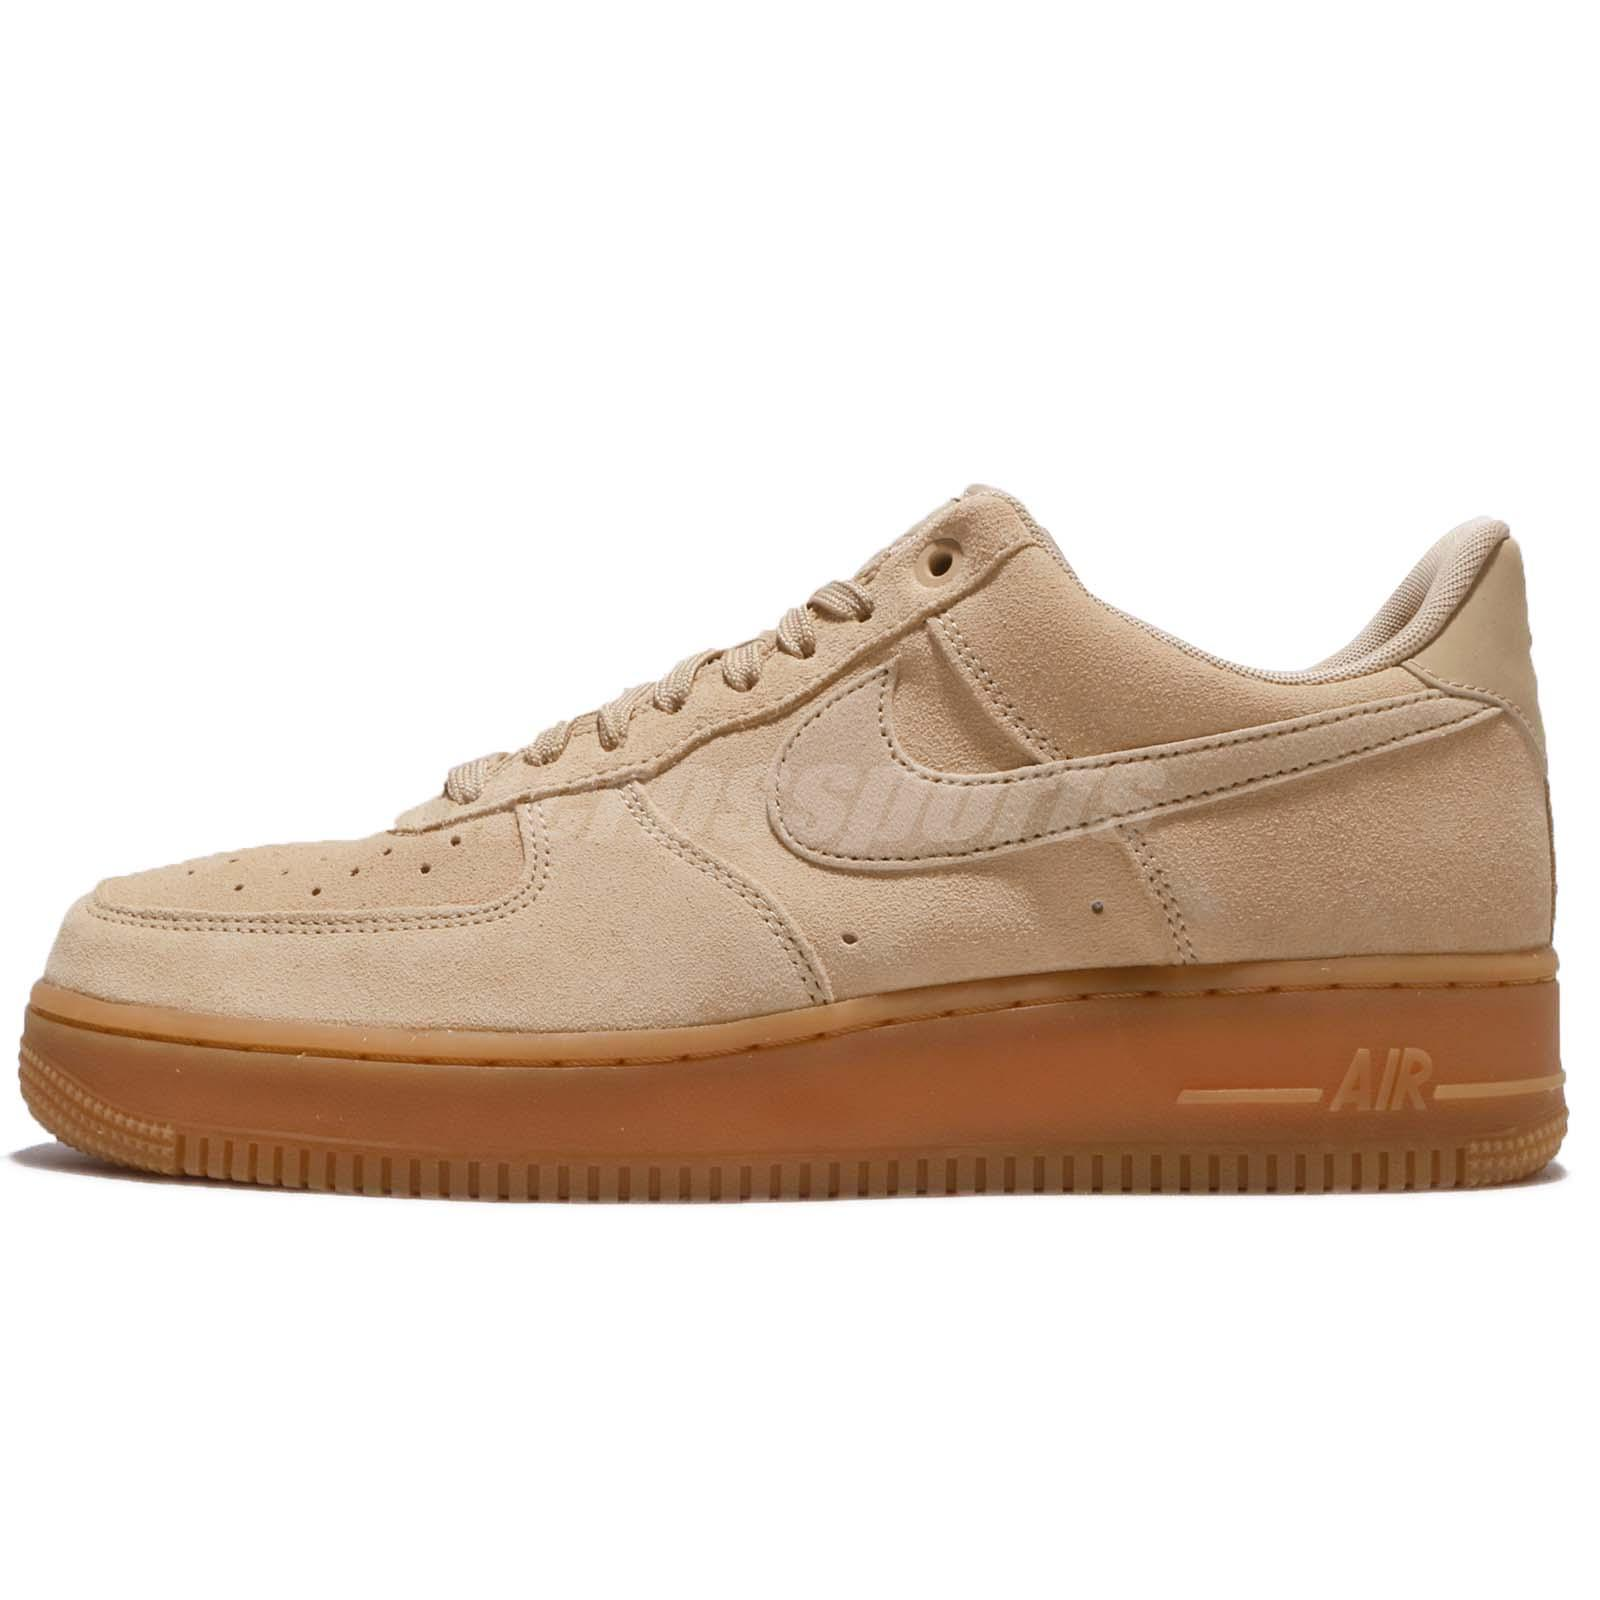 nike air force 1 07 lv8 suede mushroom suede men shoes af1 sneakers aa1117 200 ebay. Black Bedroom Furniture Sets. Home Design Ideas